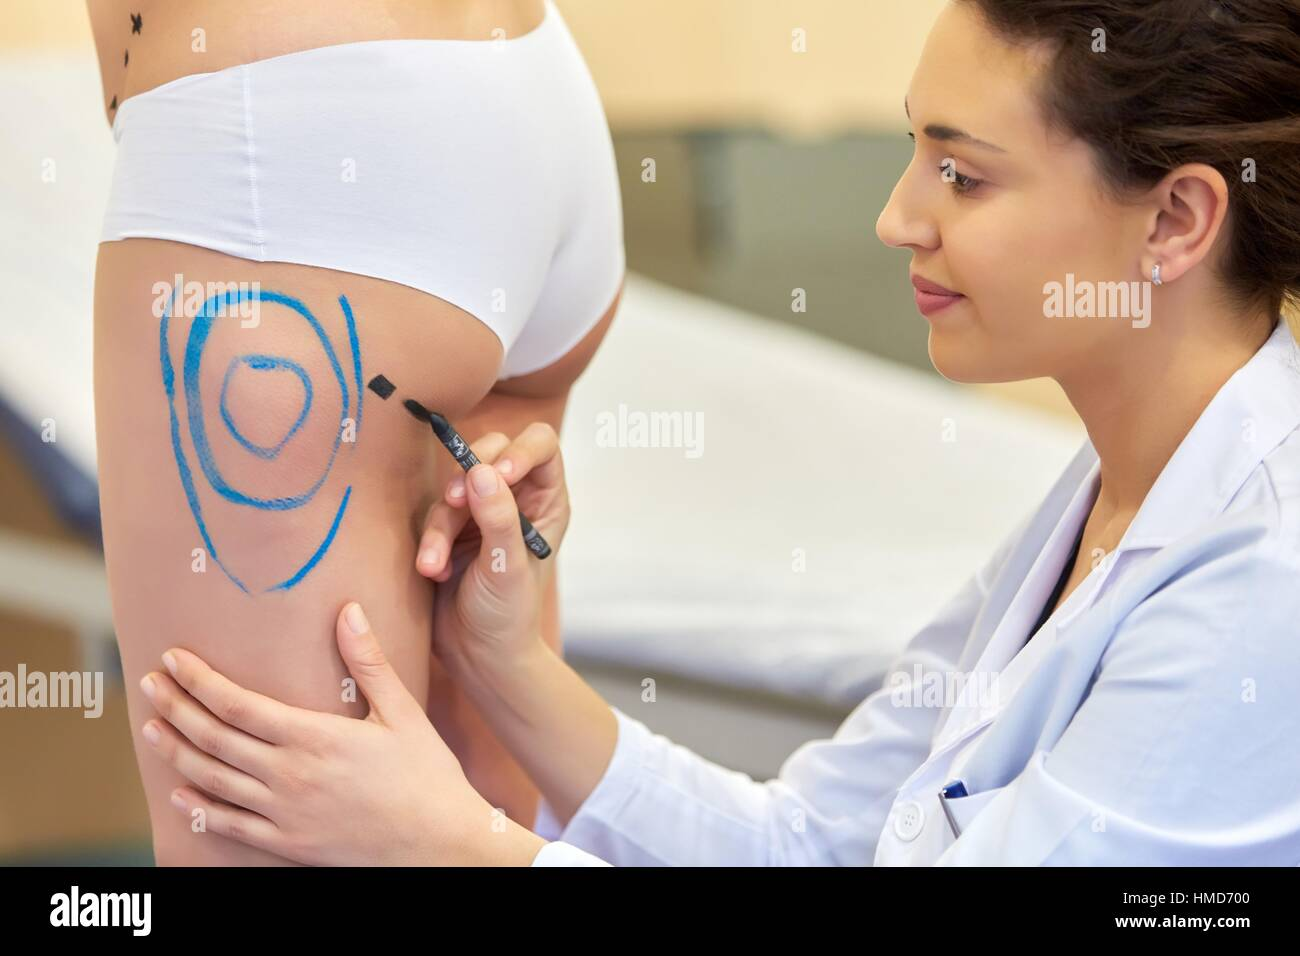 Liposuction. Liposculpture. It consists of aspiration cannulae of body fat deposits established. Before surgery - Stock Image